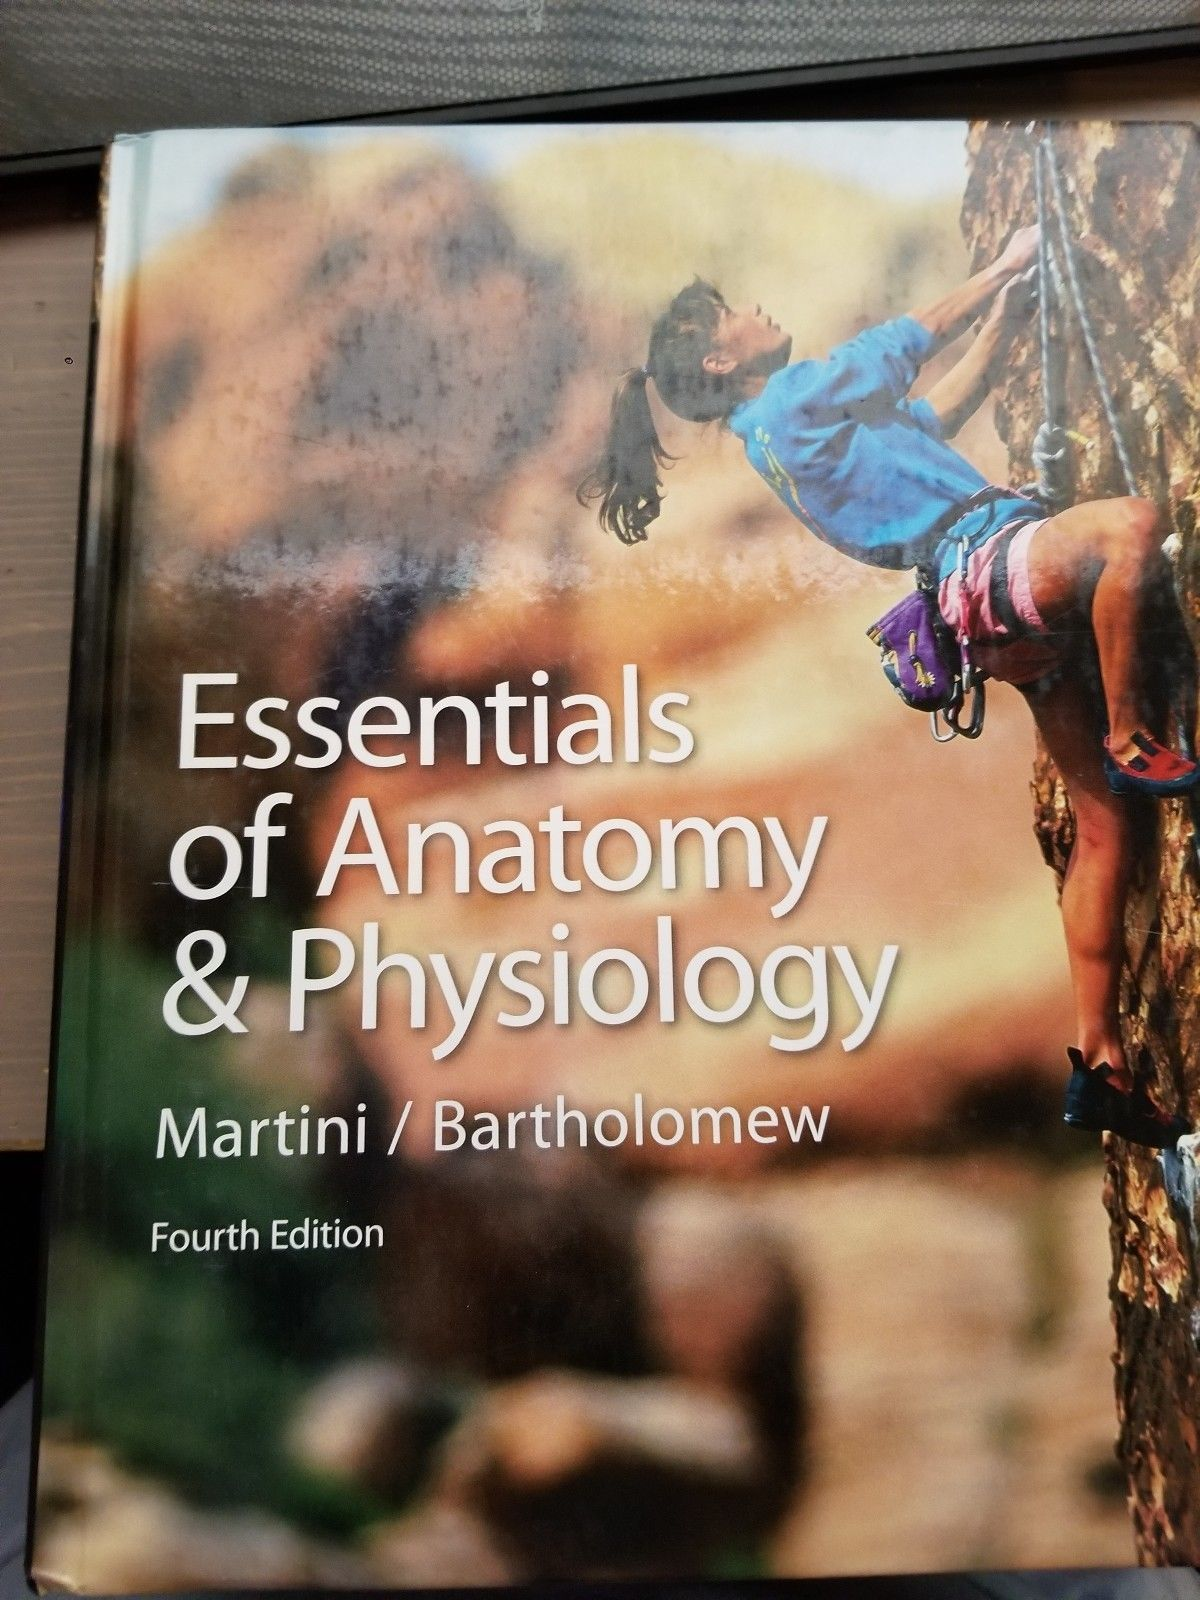 Enchanting Essentials Of Anatomy And Physiology 6th Edition Martini ...